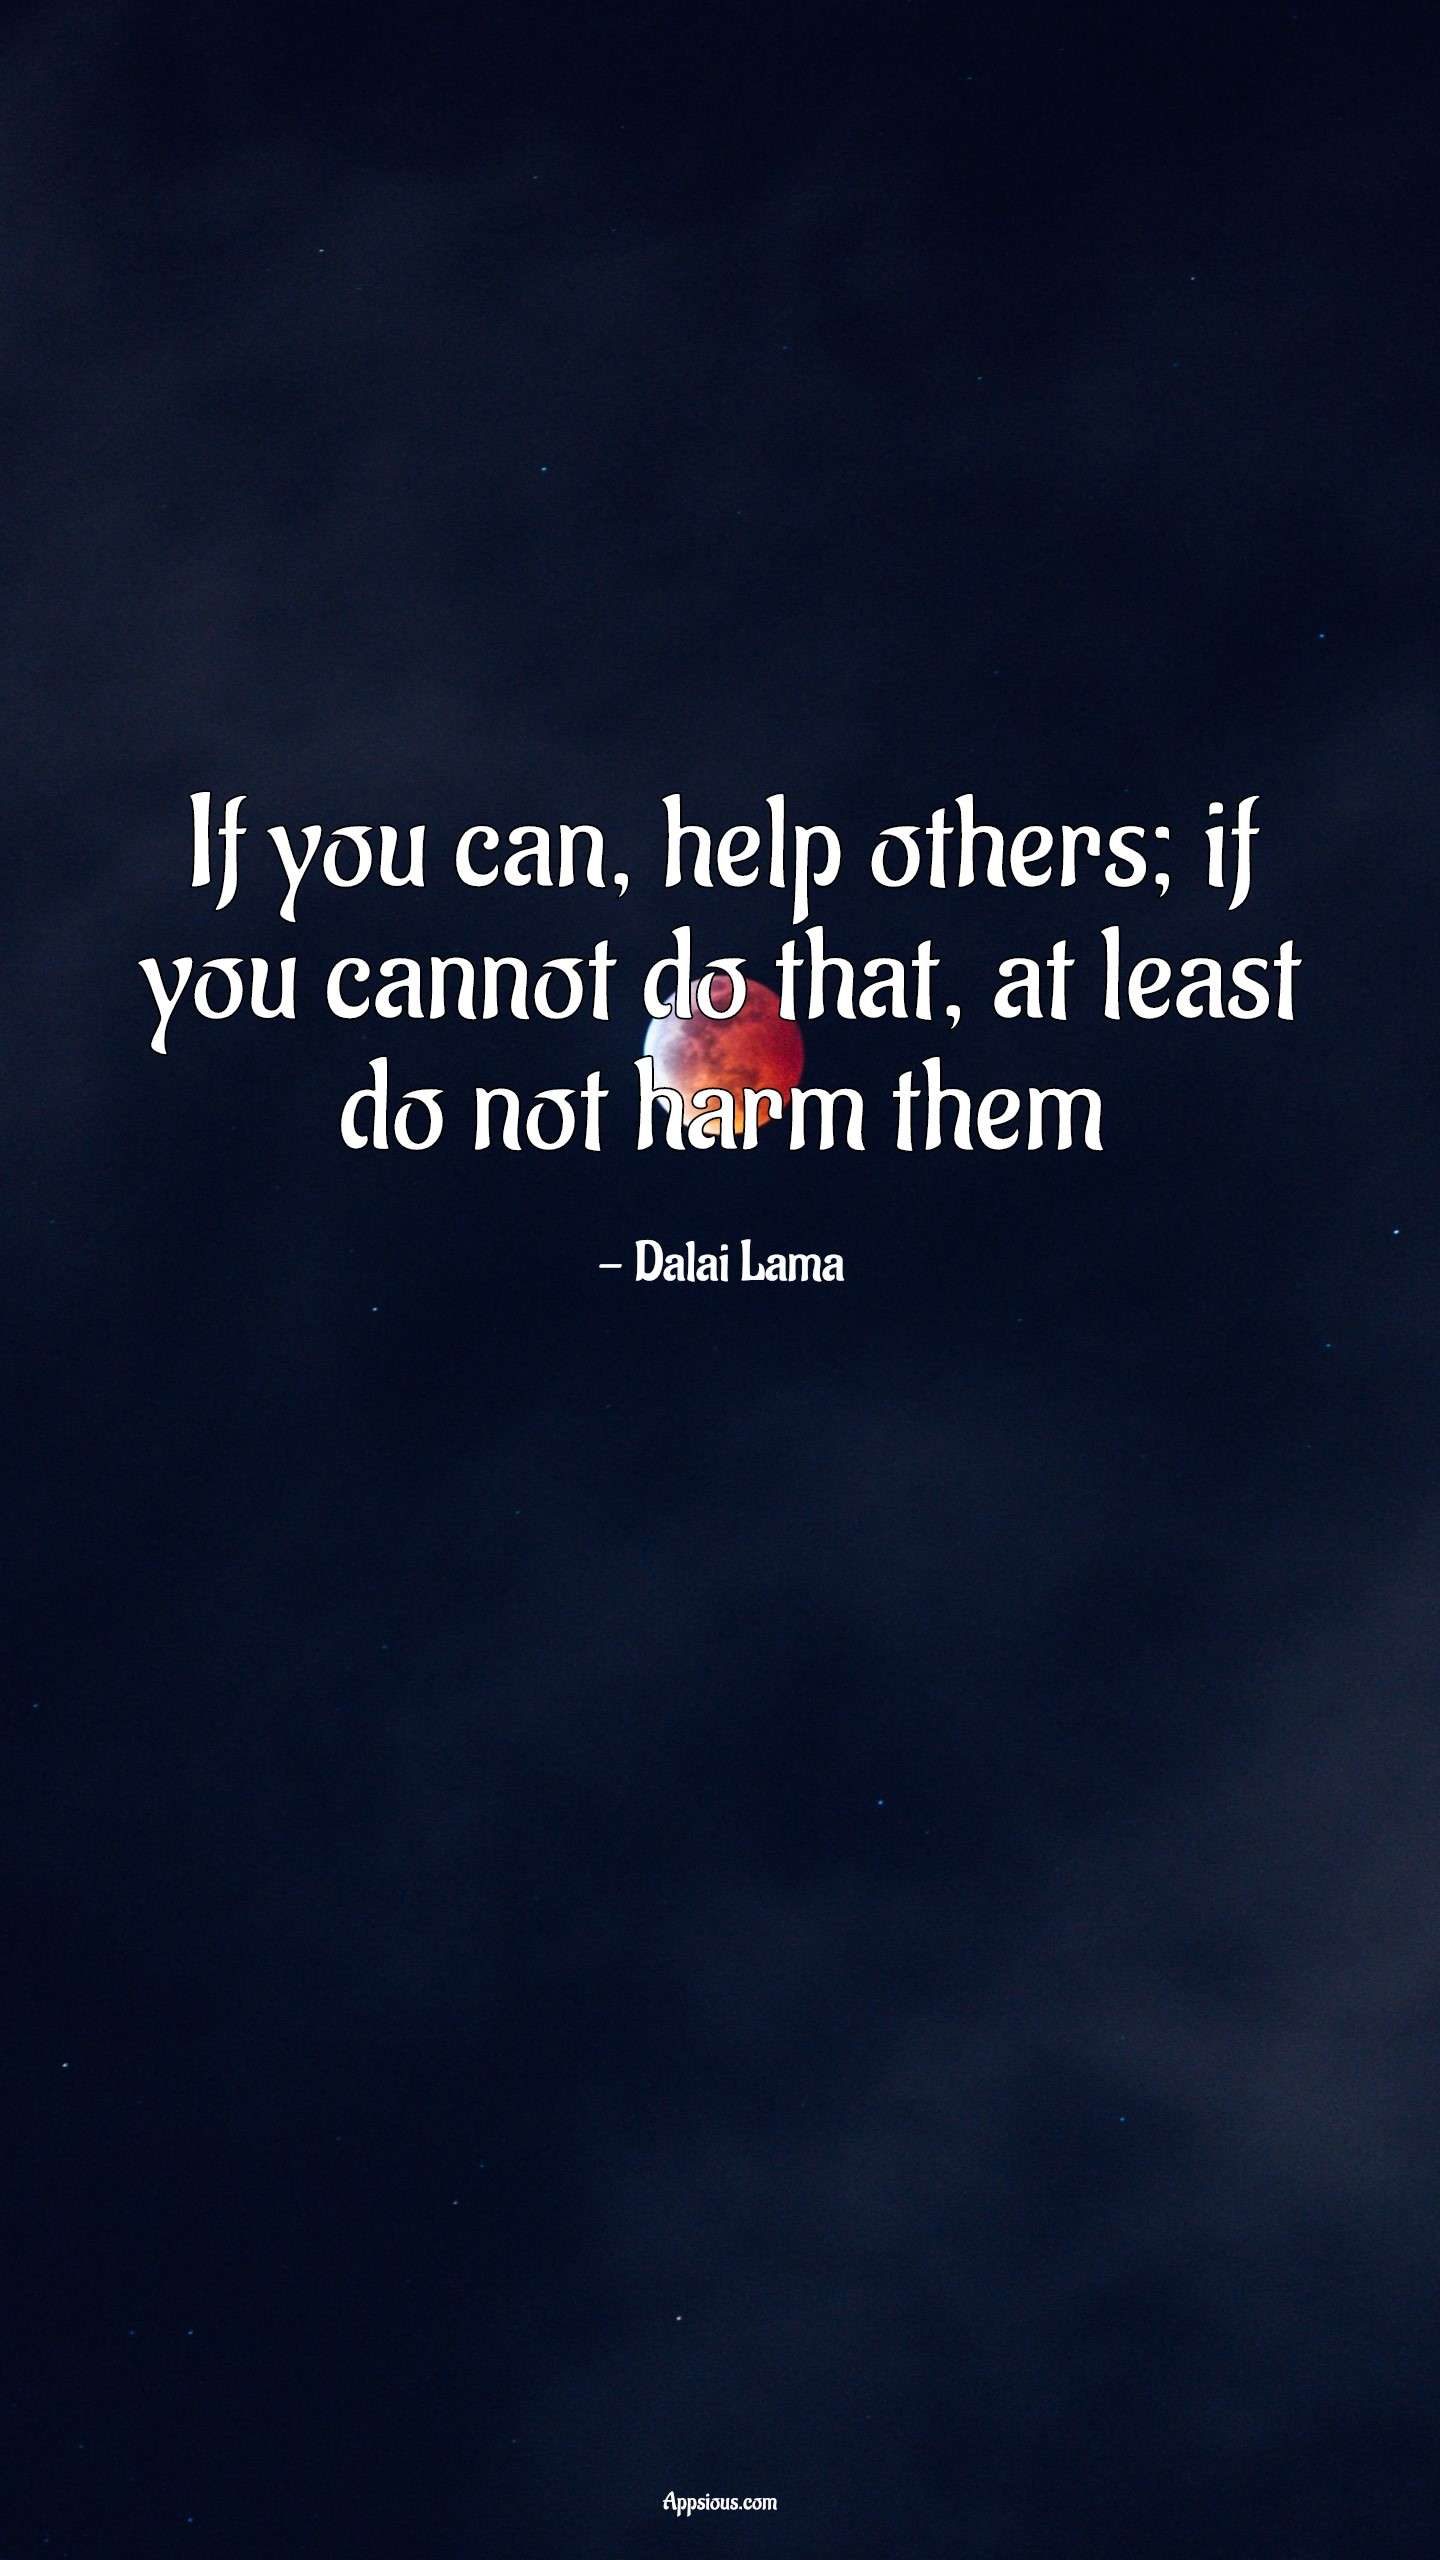 If you can, help others; if you cannot do that, at least do not harm them